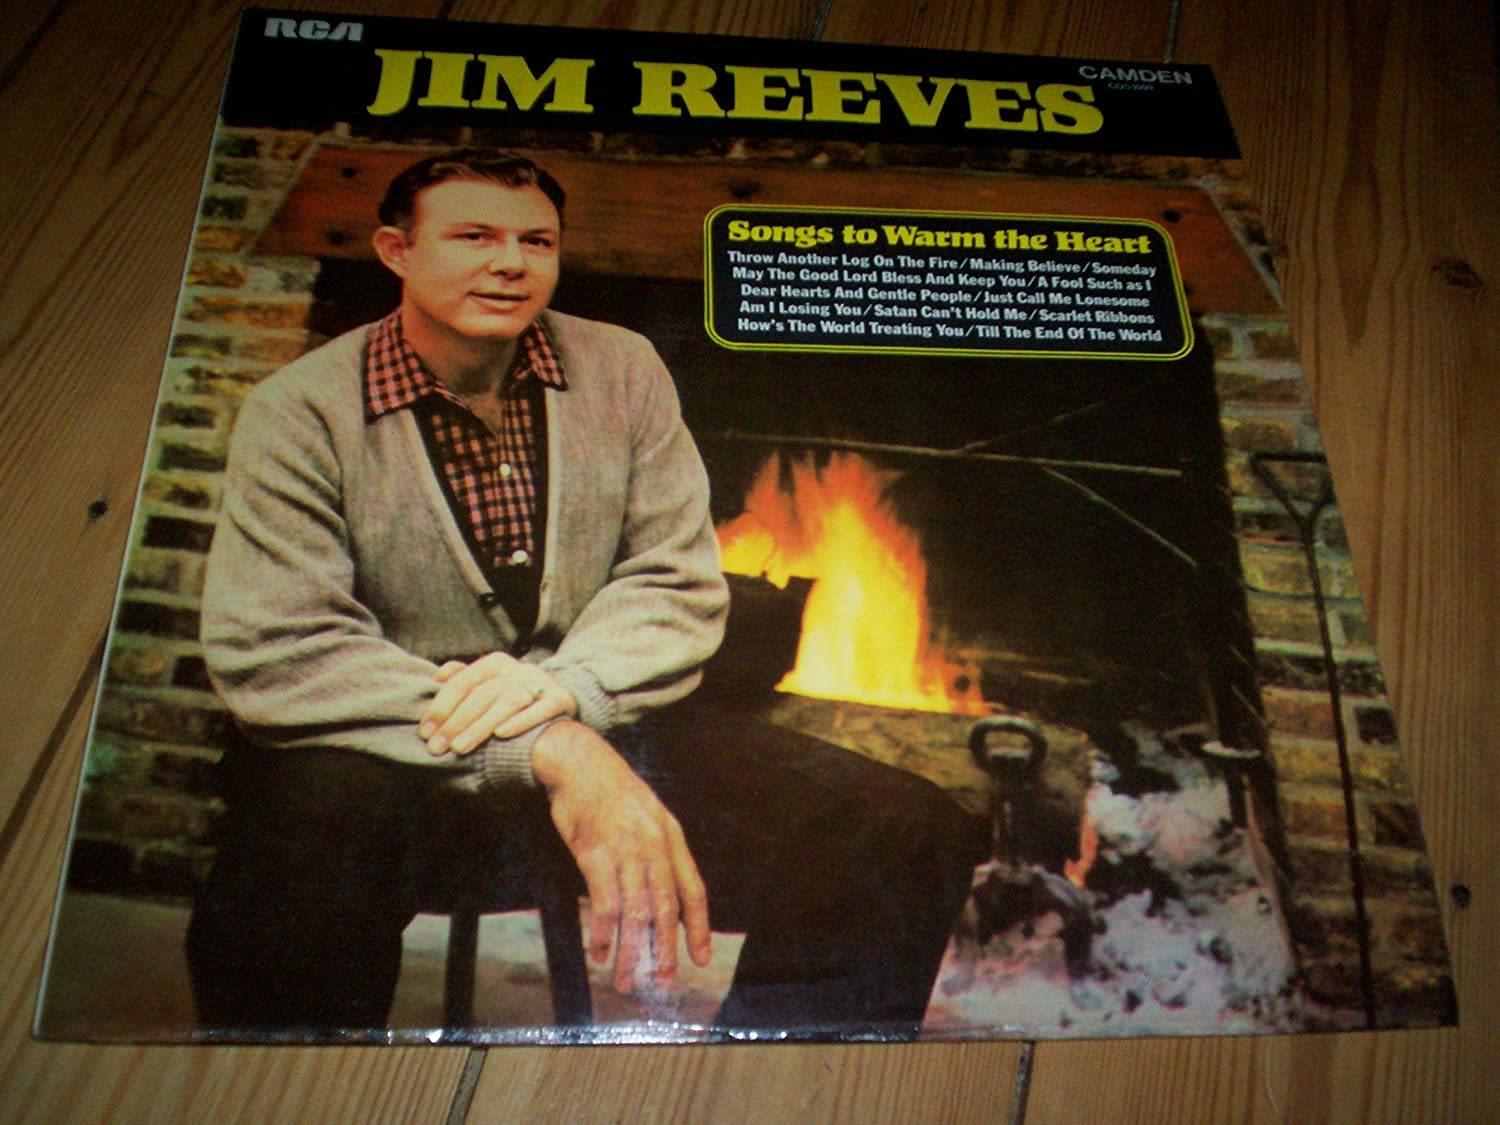 LP RECORD RCA JIM REEVES SONGS TO WARM THE HEART: Amazon.co.uk ...